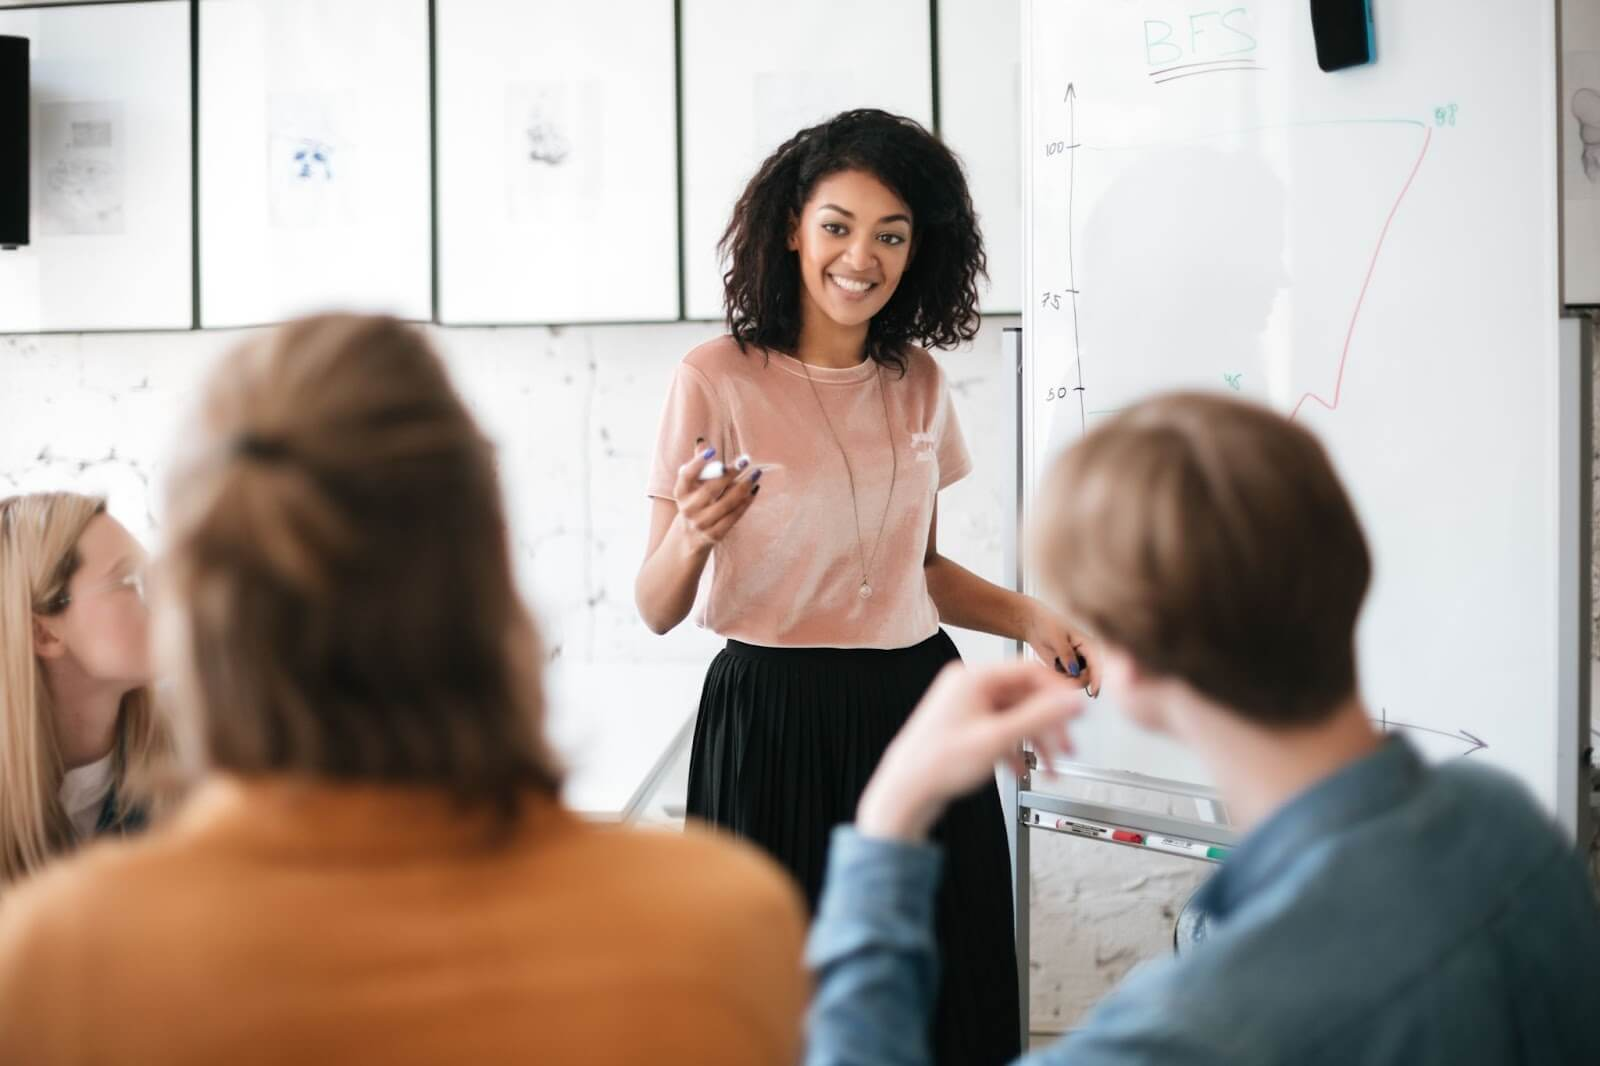 Woman standing at whiteboard doing pitch presentation